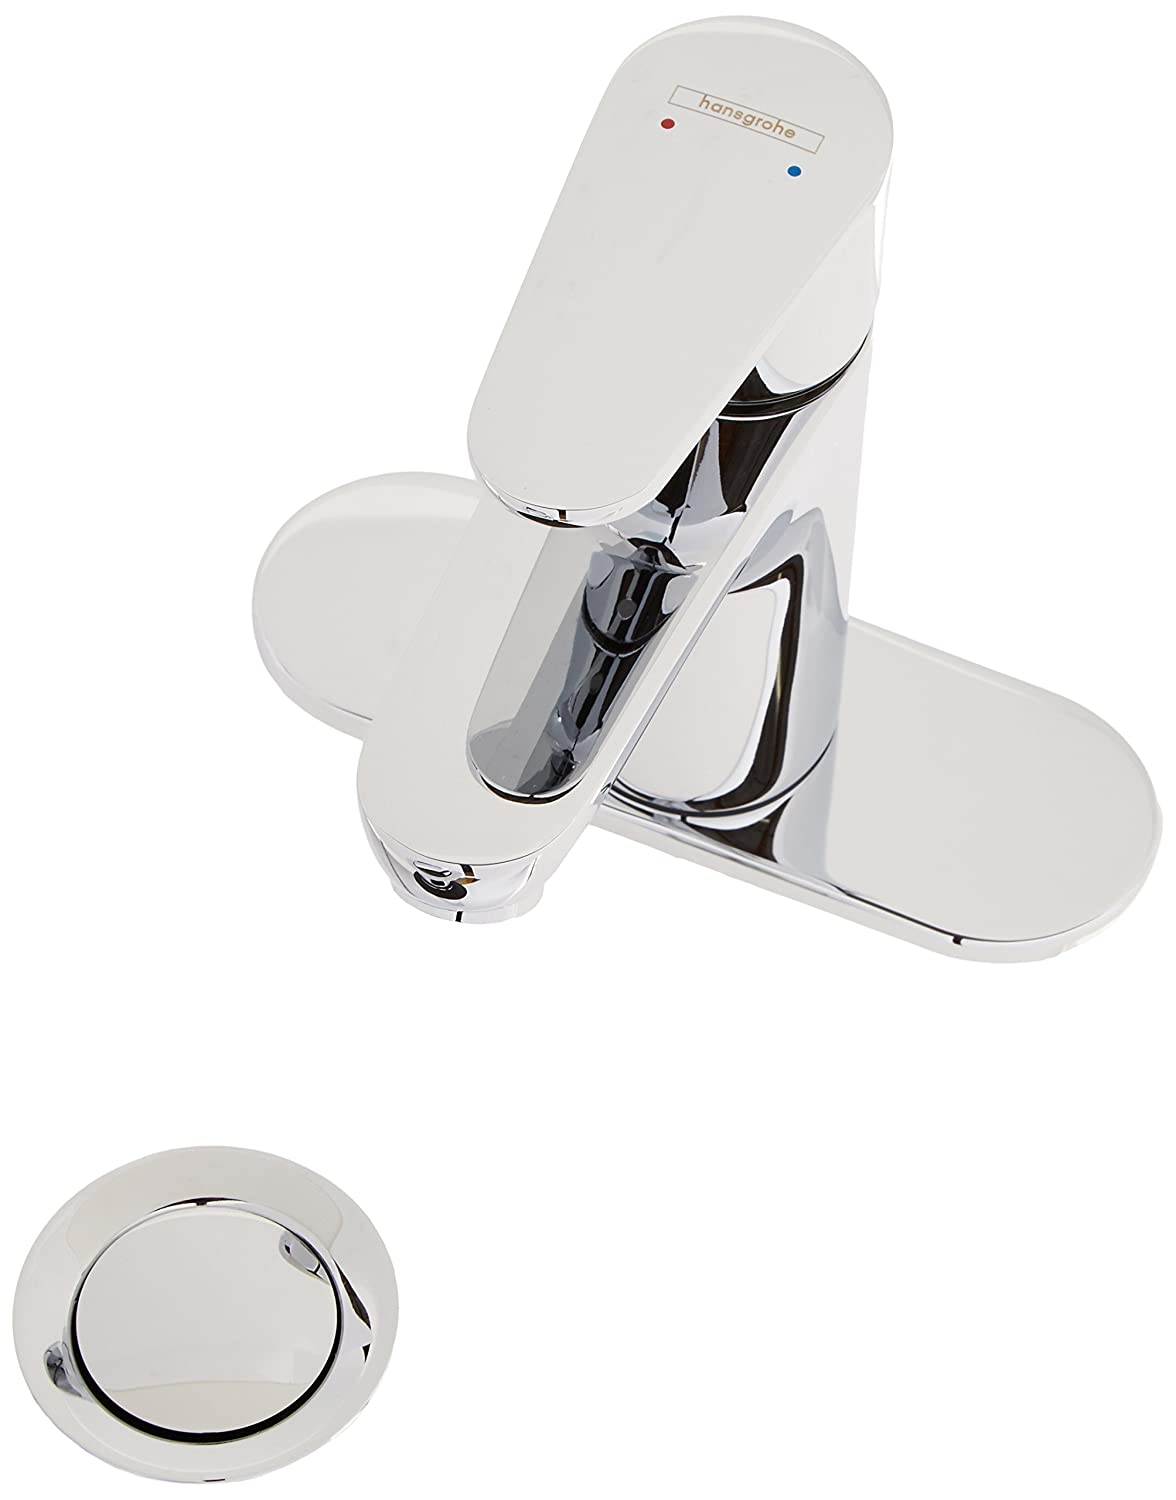 Beautiful Hansgrohe Usa Phone Number Images - Bathroom and Shower ...